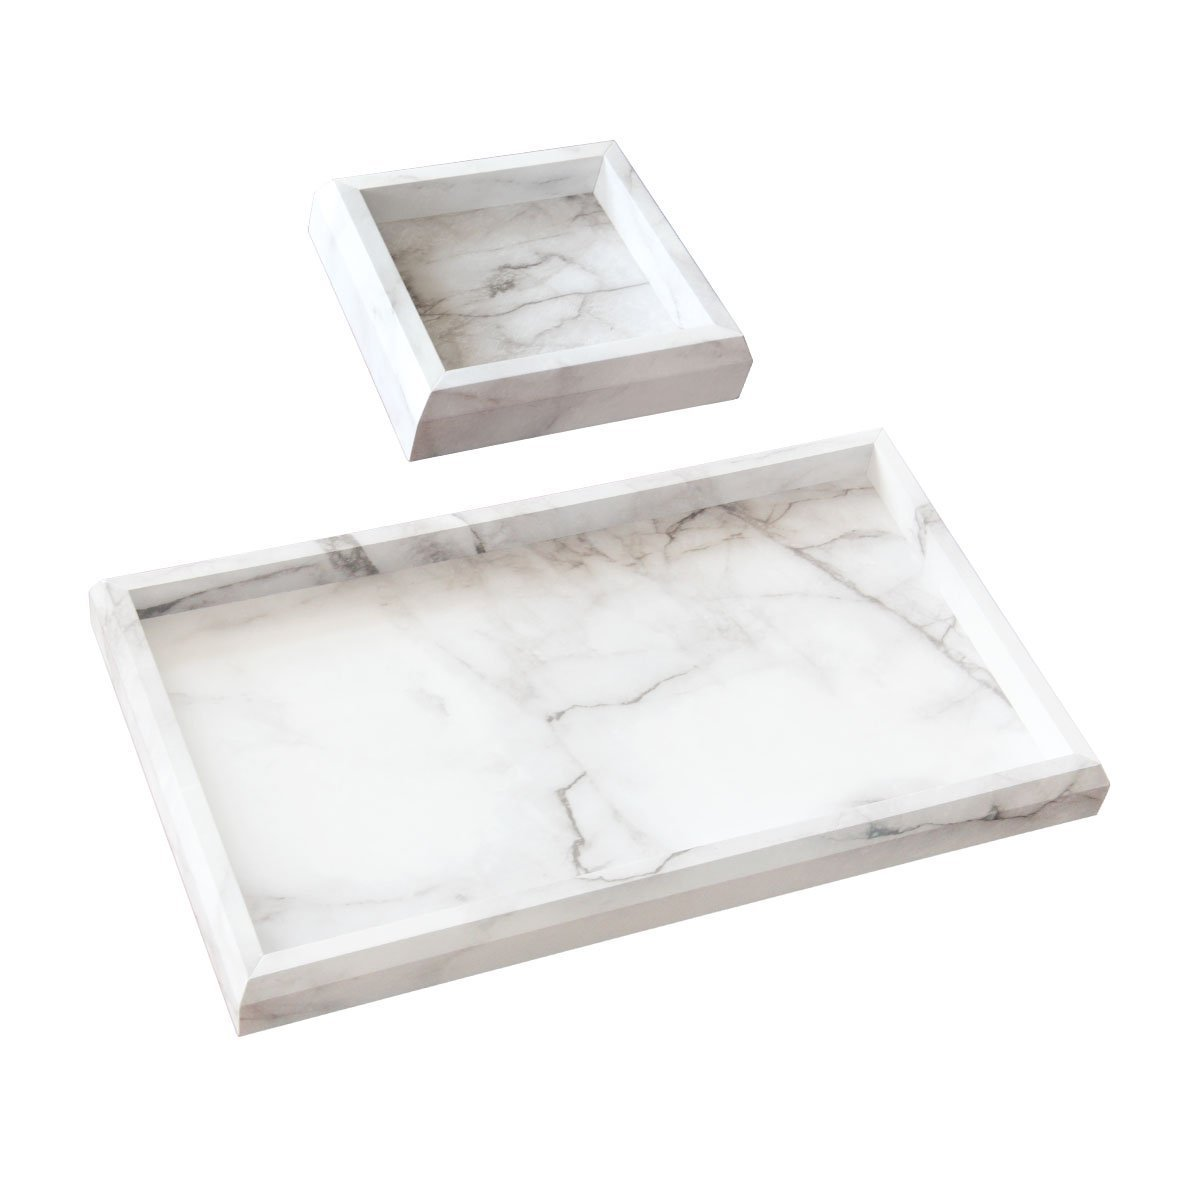 Roomfitters Marble Print Vanity Tray Set, Best Bathroom Catchall Trays for Jewelry Perfume, Upgraded Version Water Resistant, Anti-Scratch by Roomfitters (Image #2)